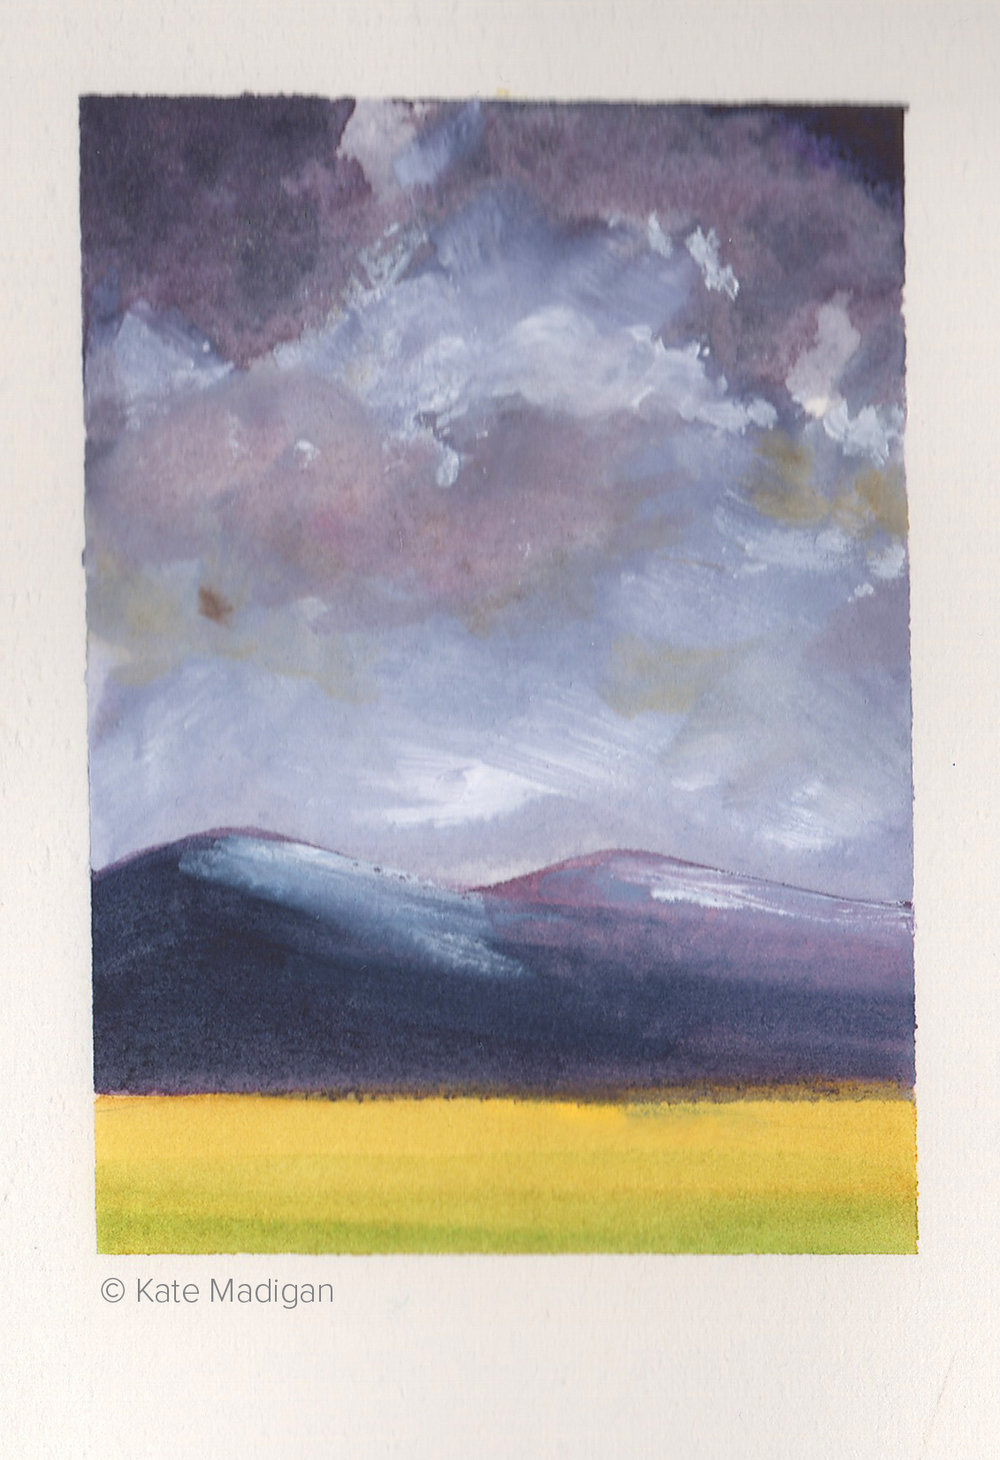 Glimpsed from the car near Blairdrummond. Quick sketch in watercolour and gouache.